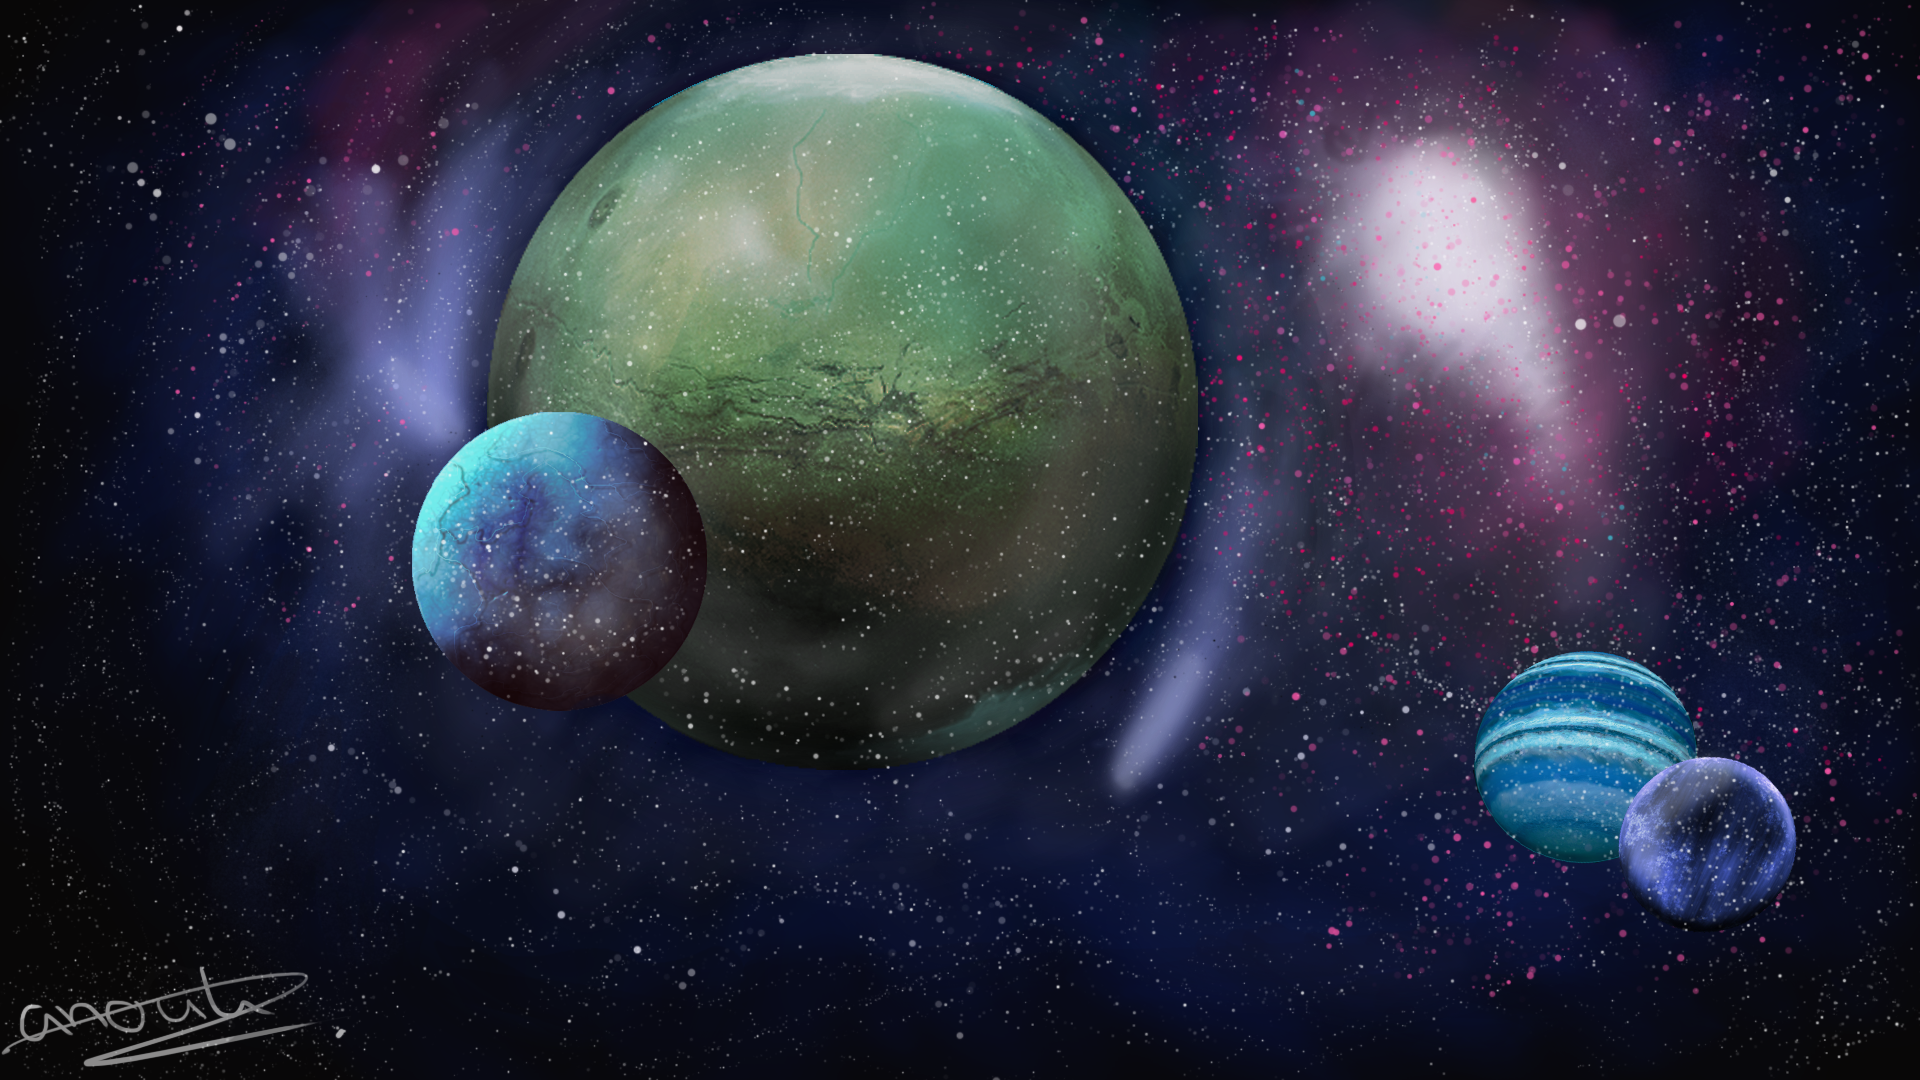 Made my first space - scene